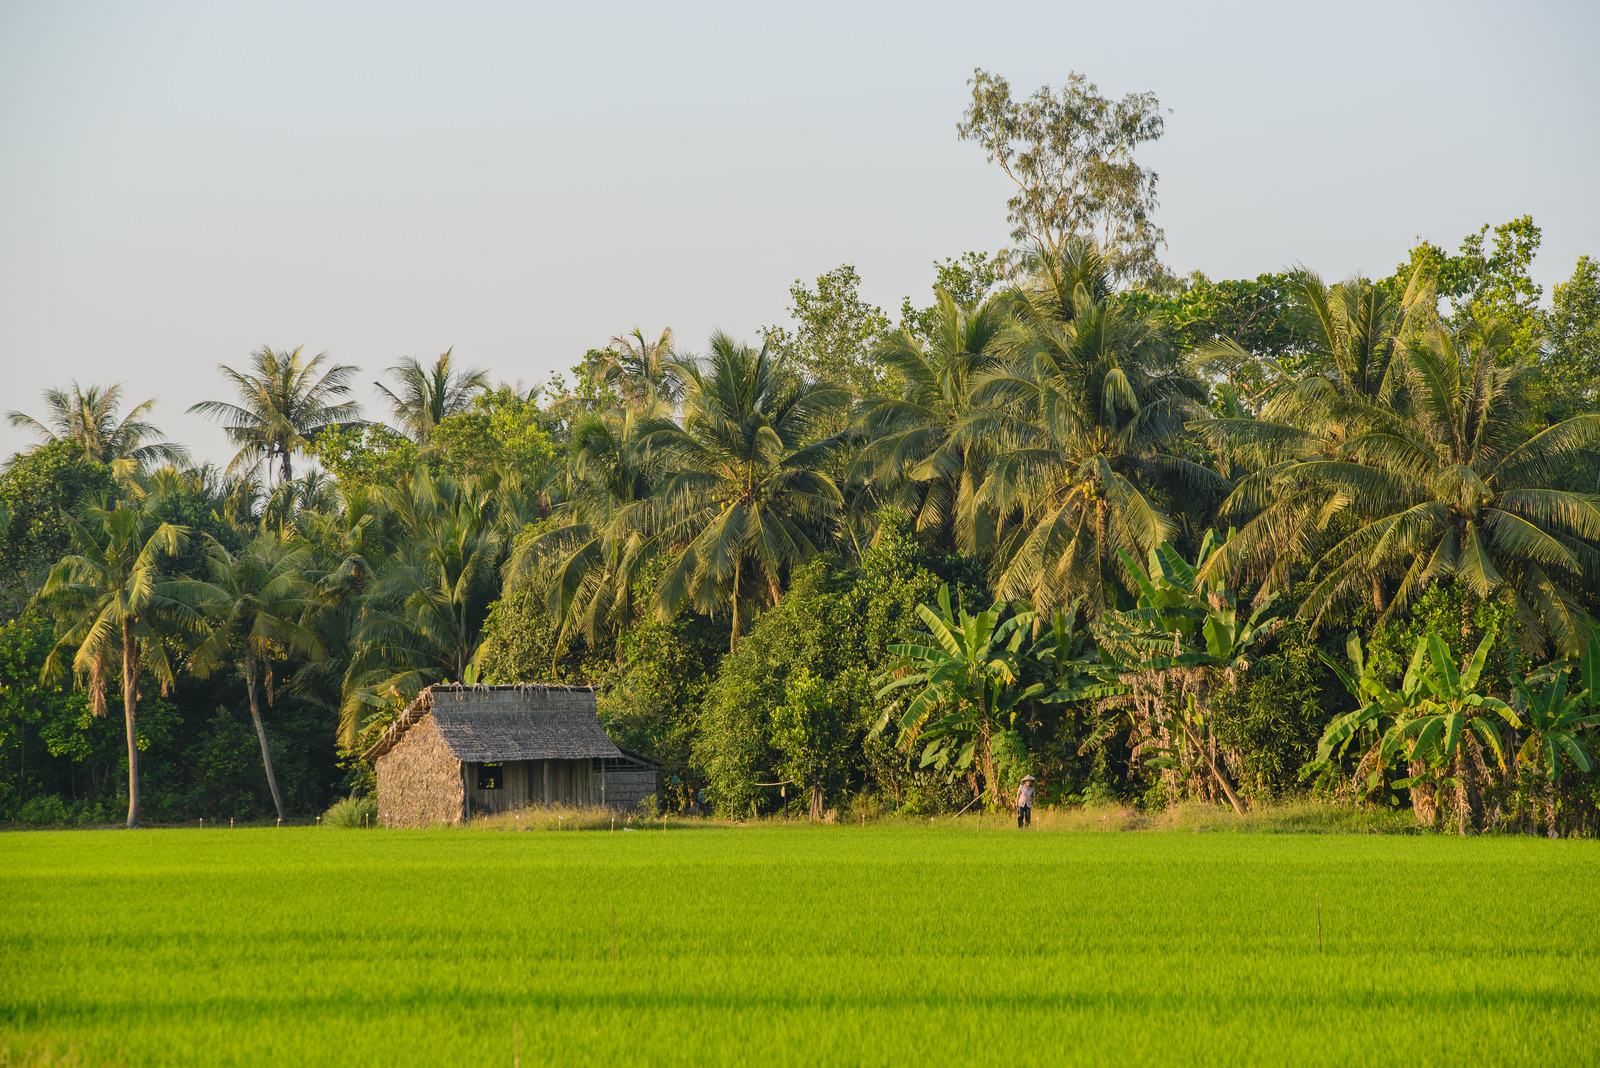 Rice paddy fields in Mekong Delta region - Mekong delta tour